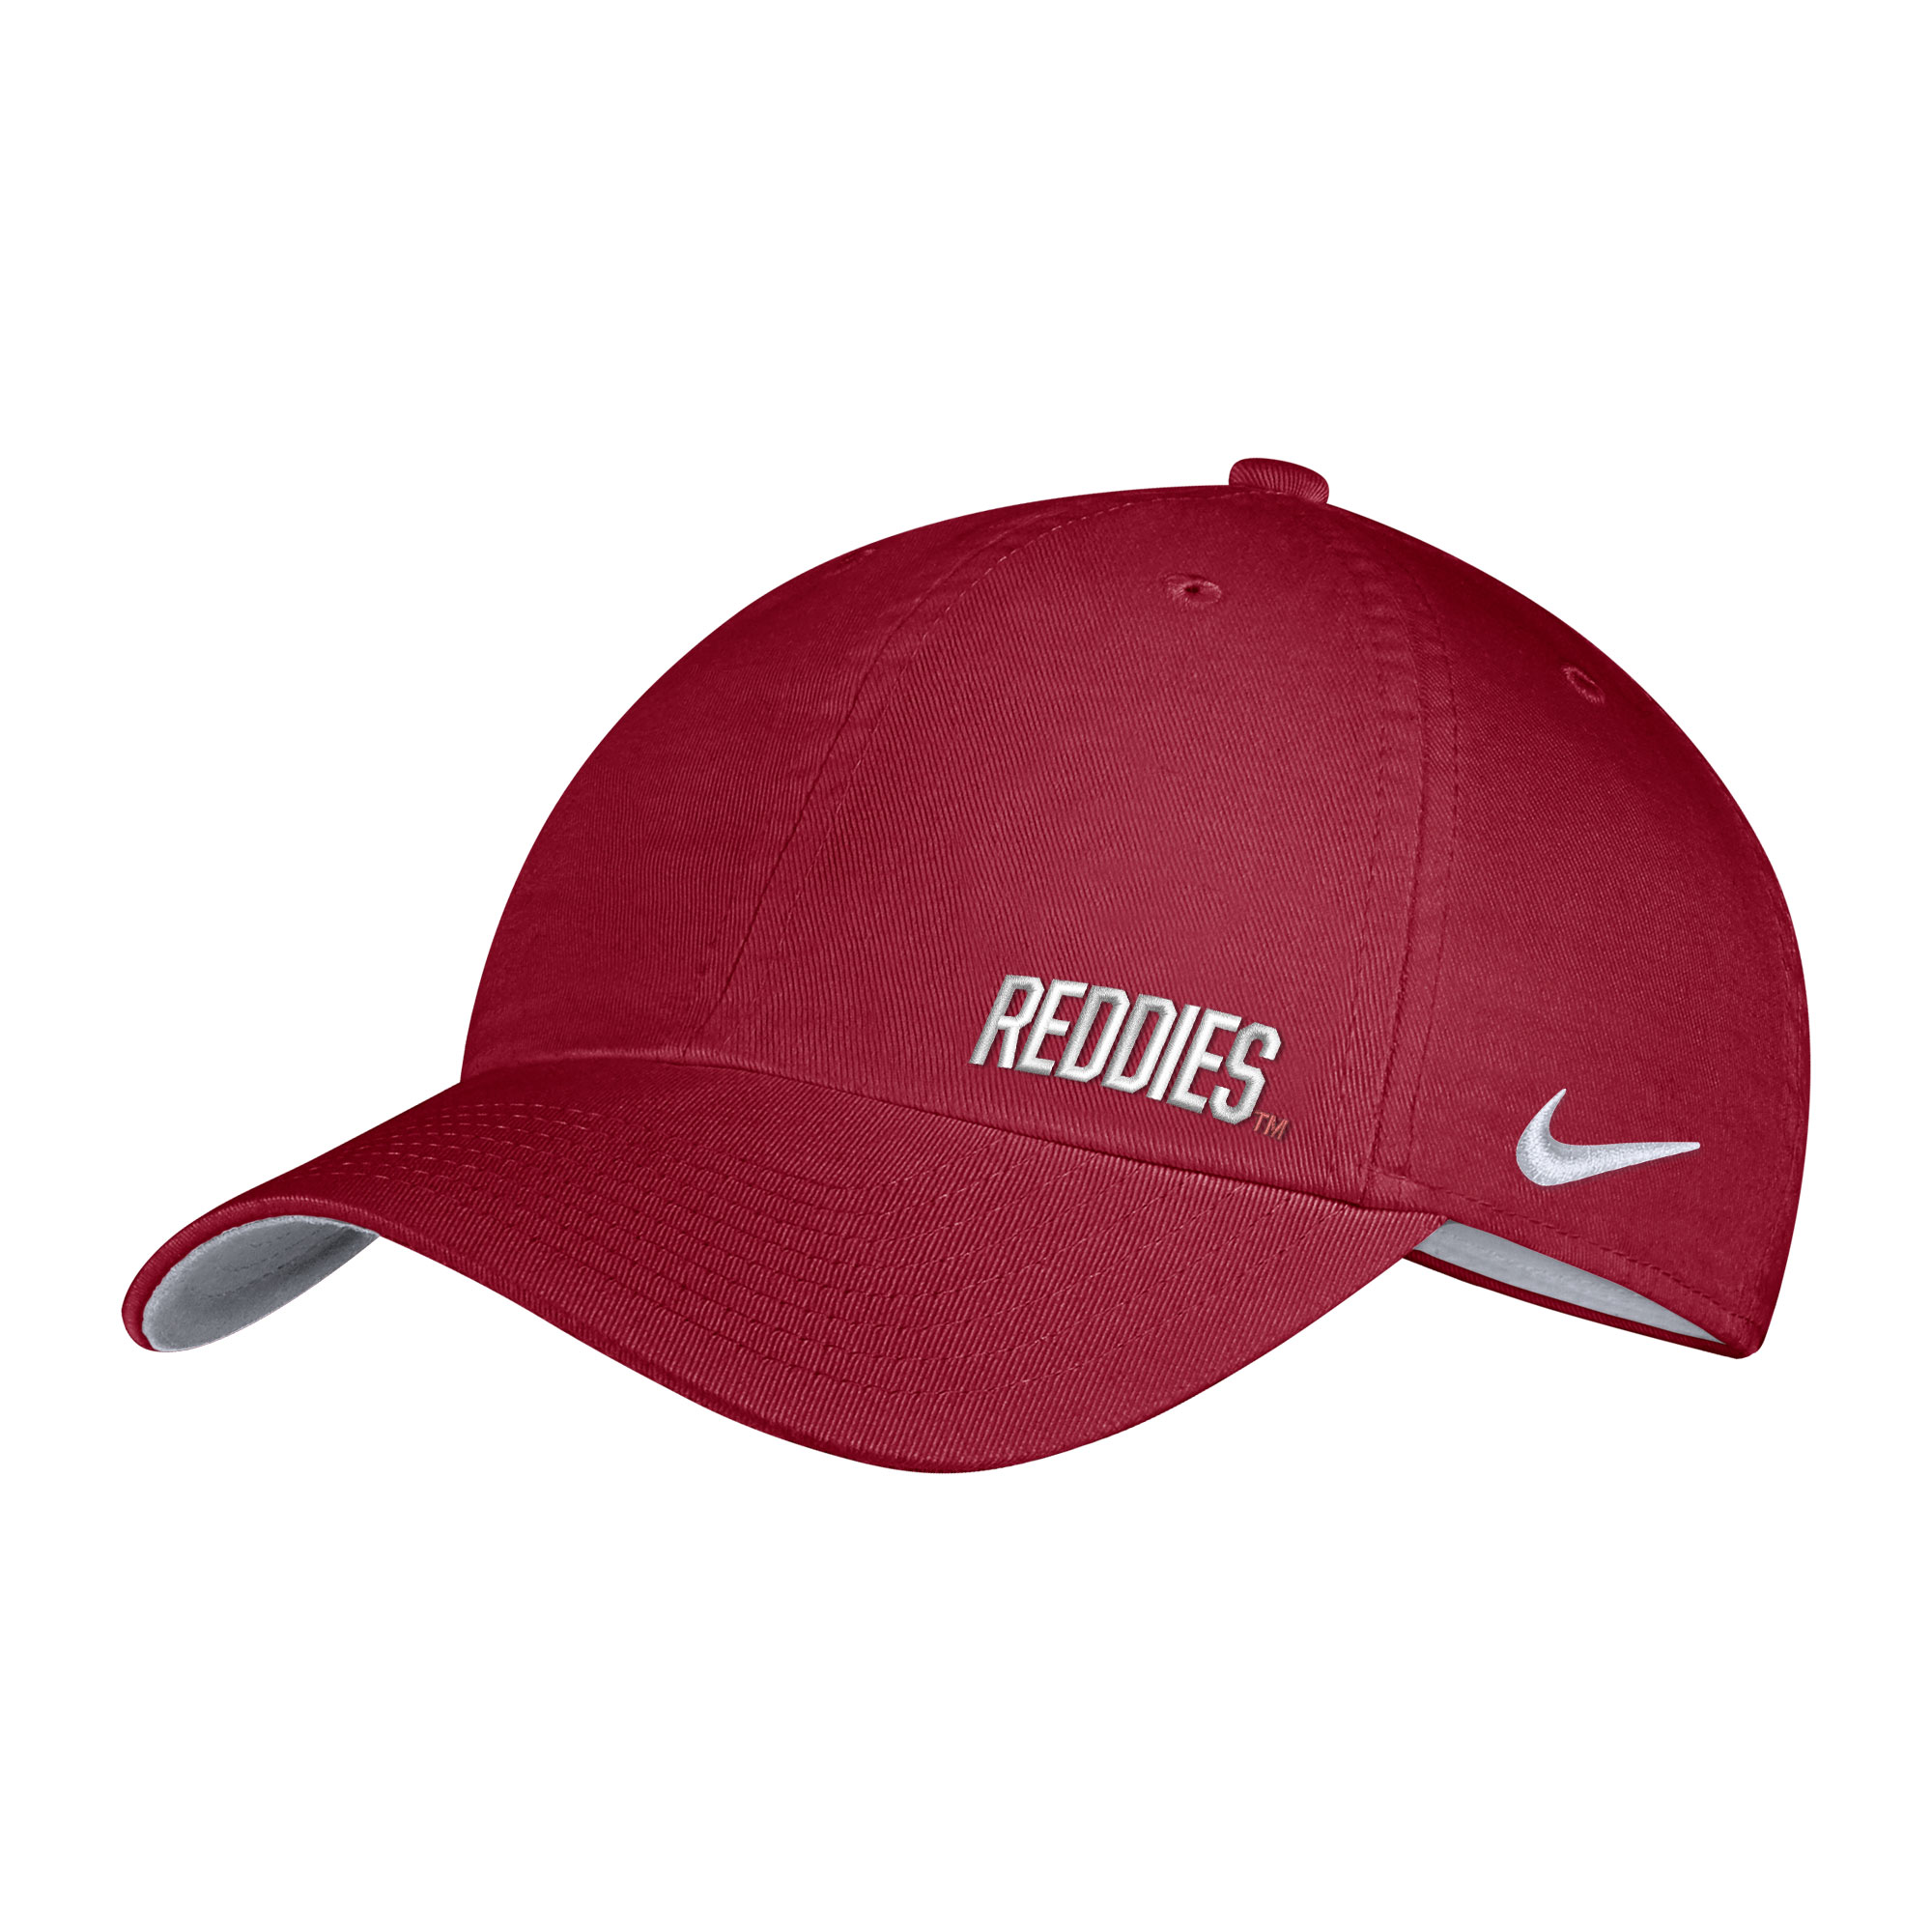 Women's Reddies Hat